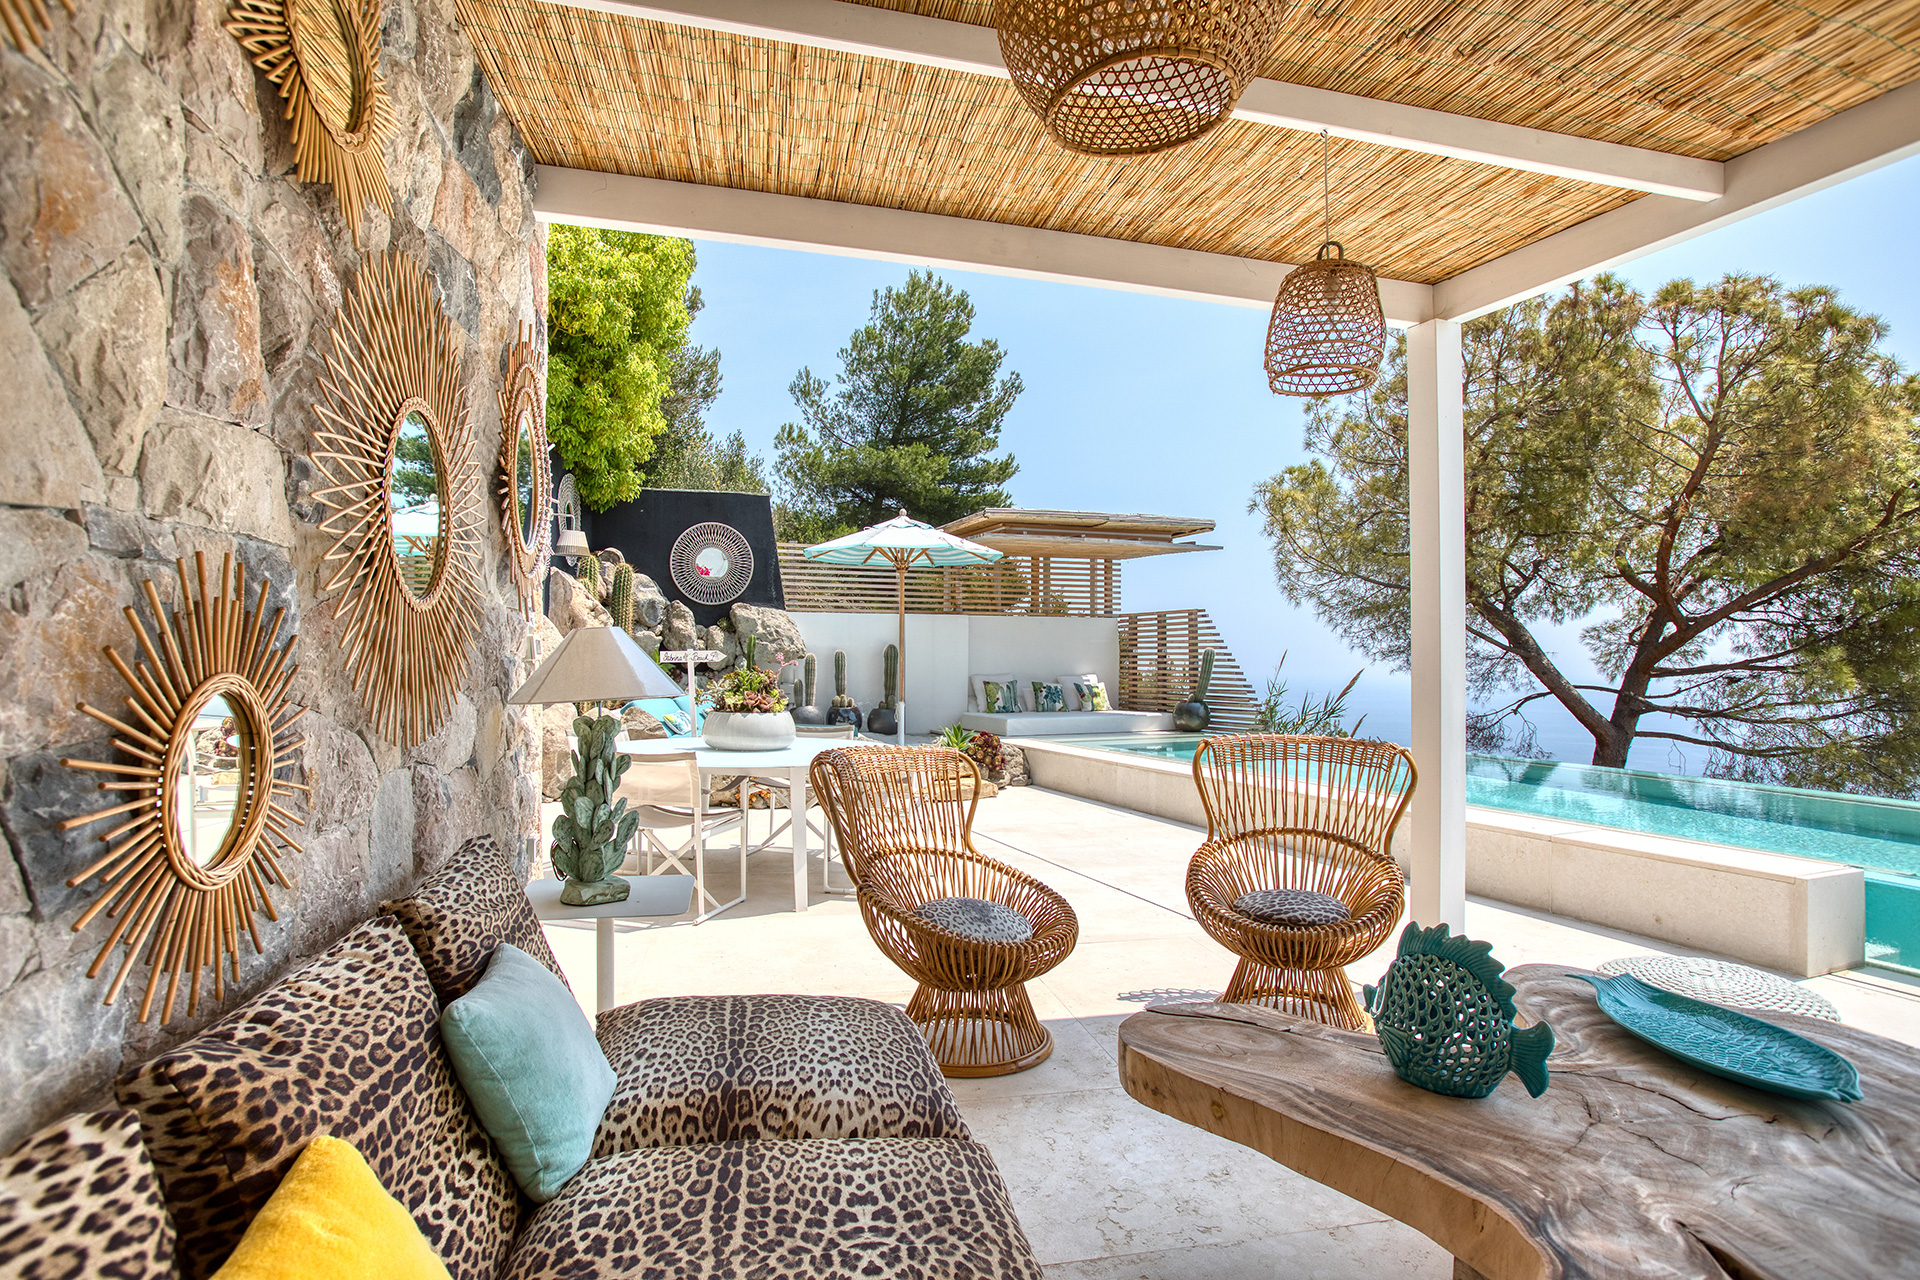 The antique rattan lights and mirrors teamed with the Paola Lenti poofs and the Roberto Cavalli animal print fabric are off-set beautifully by the cerulean water of the pool | Villa Riviera | Sabrina Monteleone-Oeino | STIR